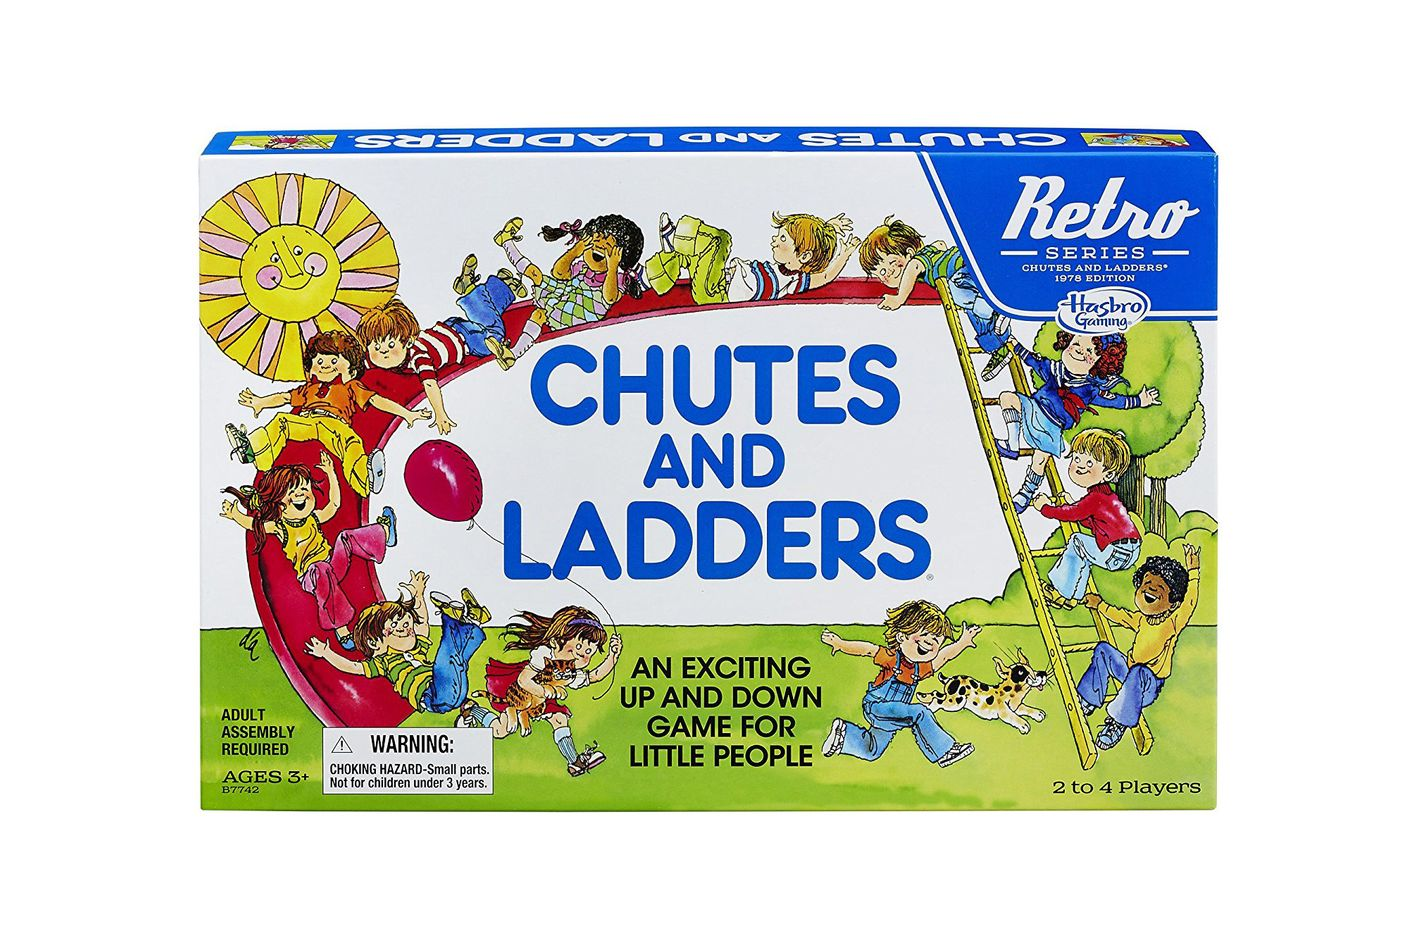 Chutes and Ladders: 1978 Retro Series Edition